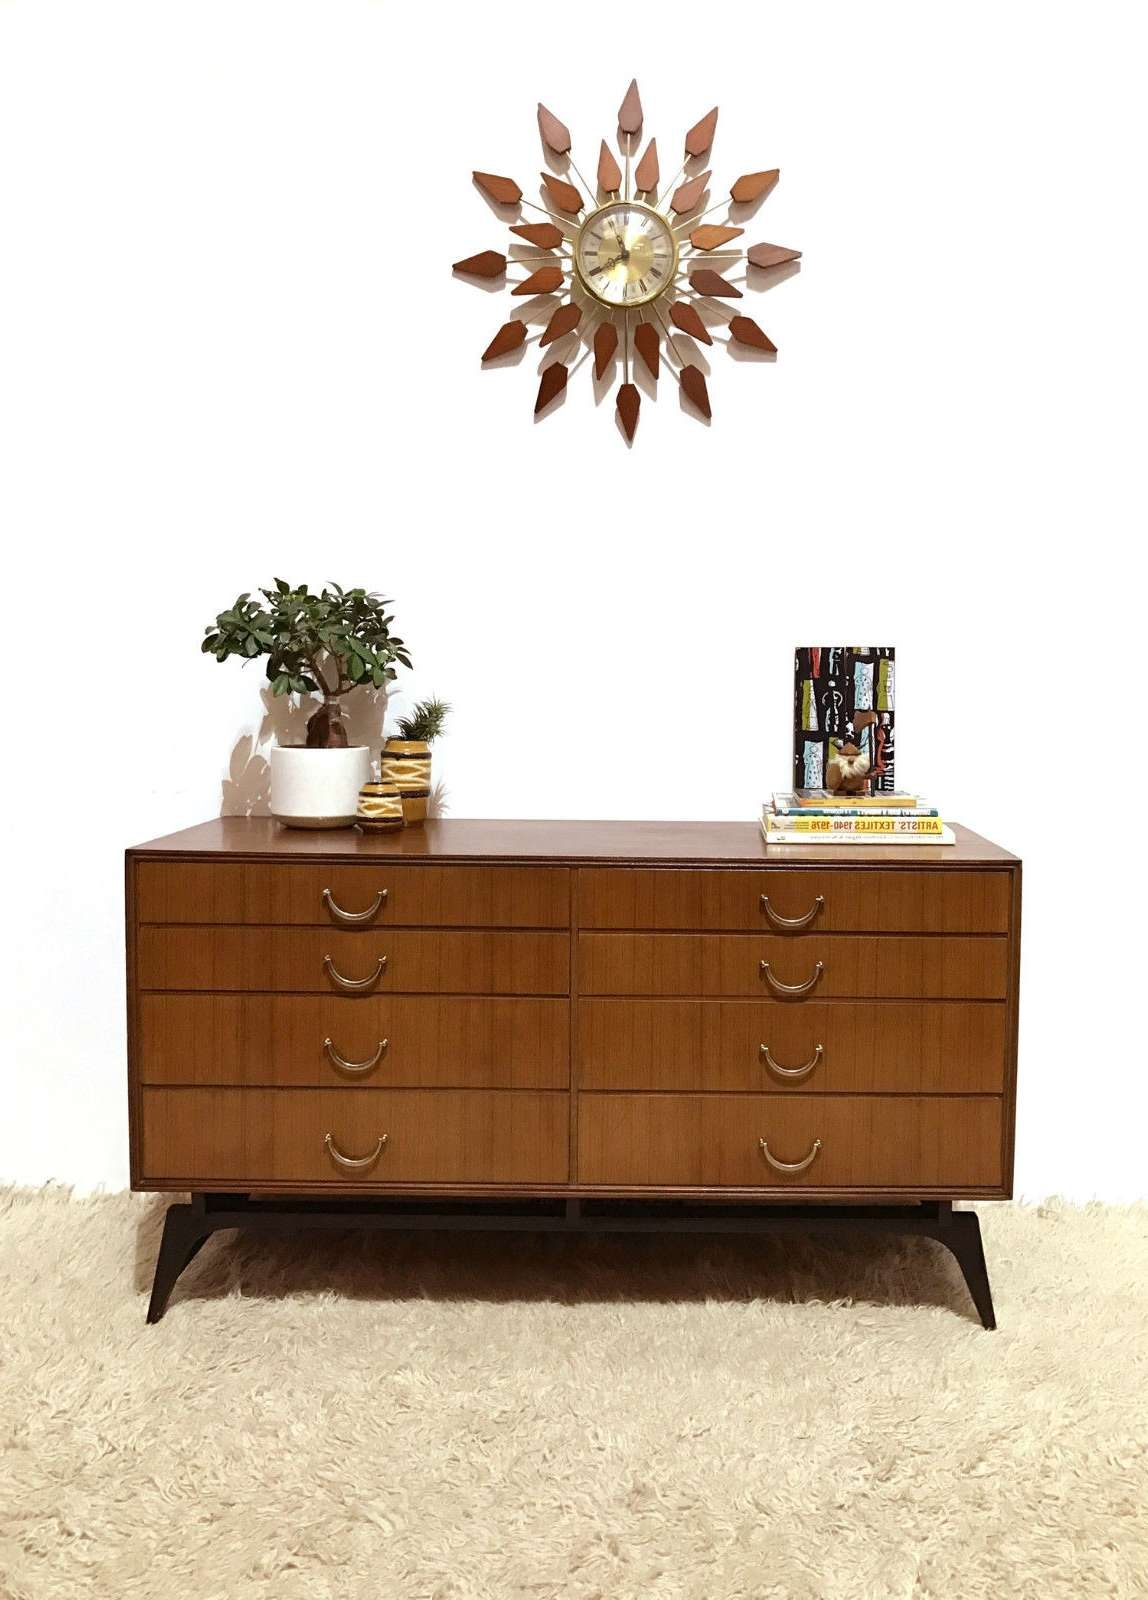 50s 60s Outstanding Mid Century Retro Vintage Sideboard Chest In 50s Sideboards (View 12 of 20)